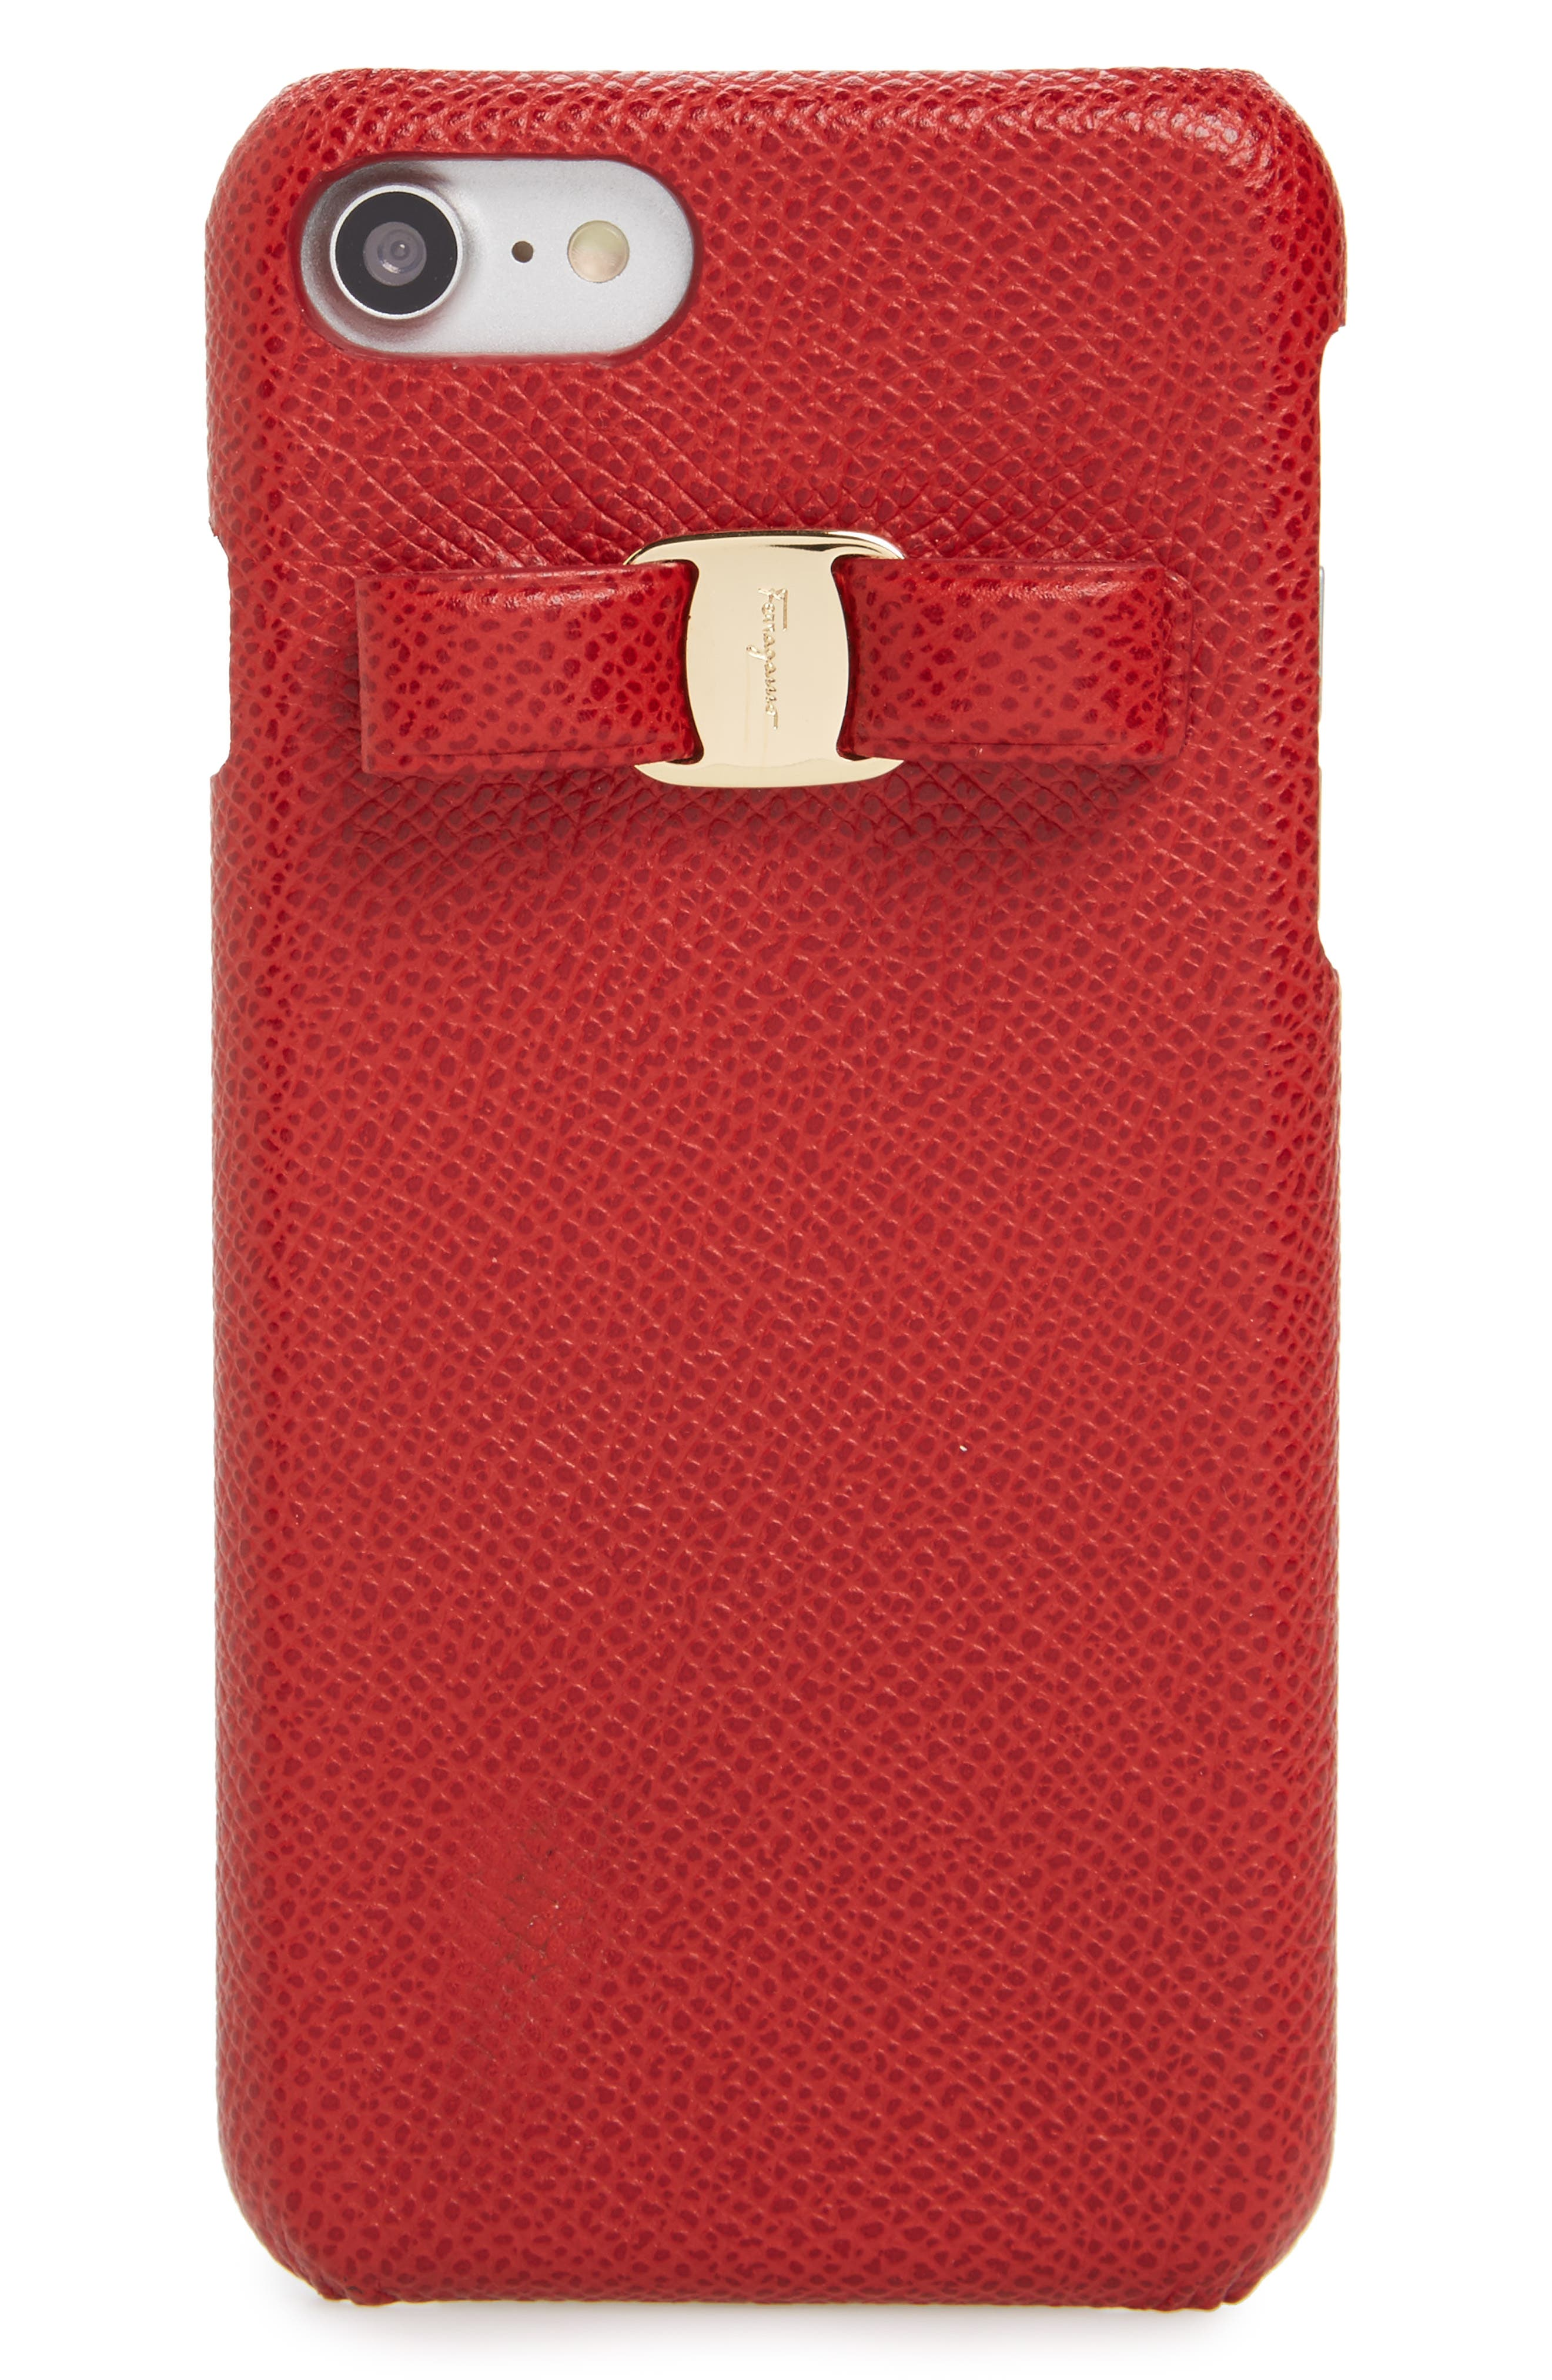 Salvatore Ferragamo Vara iPhone 7 Case